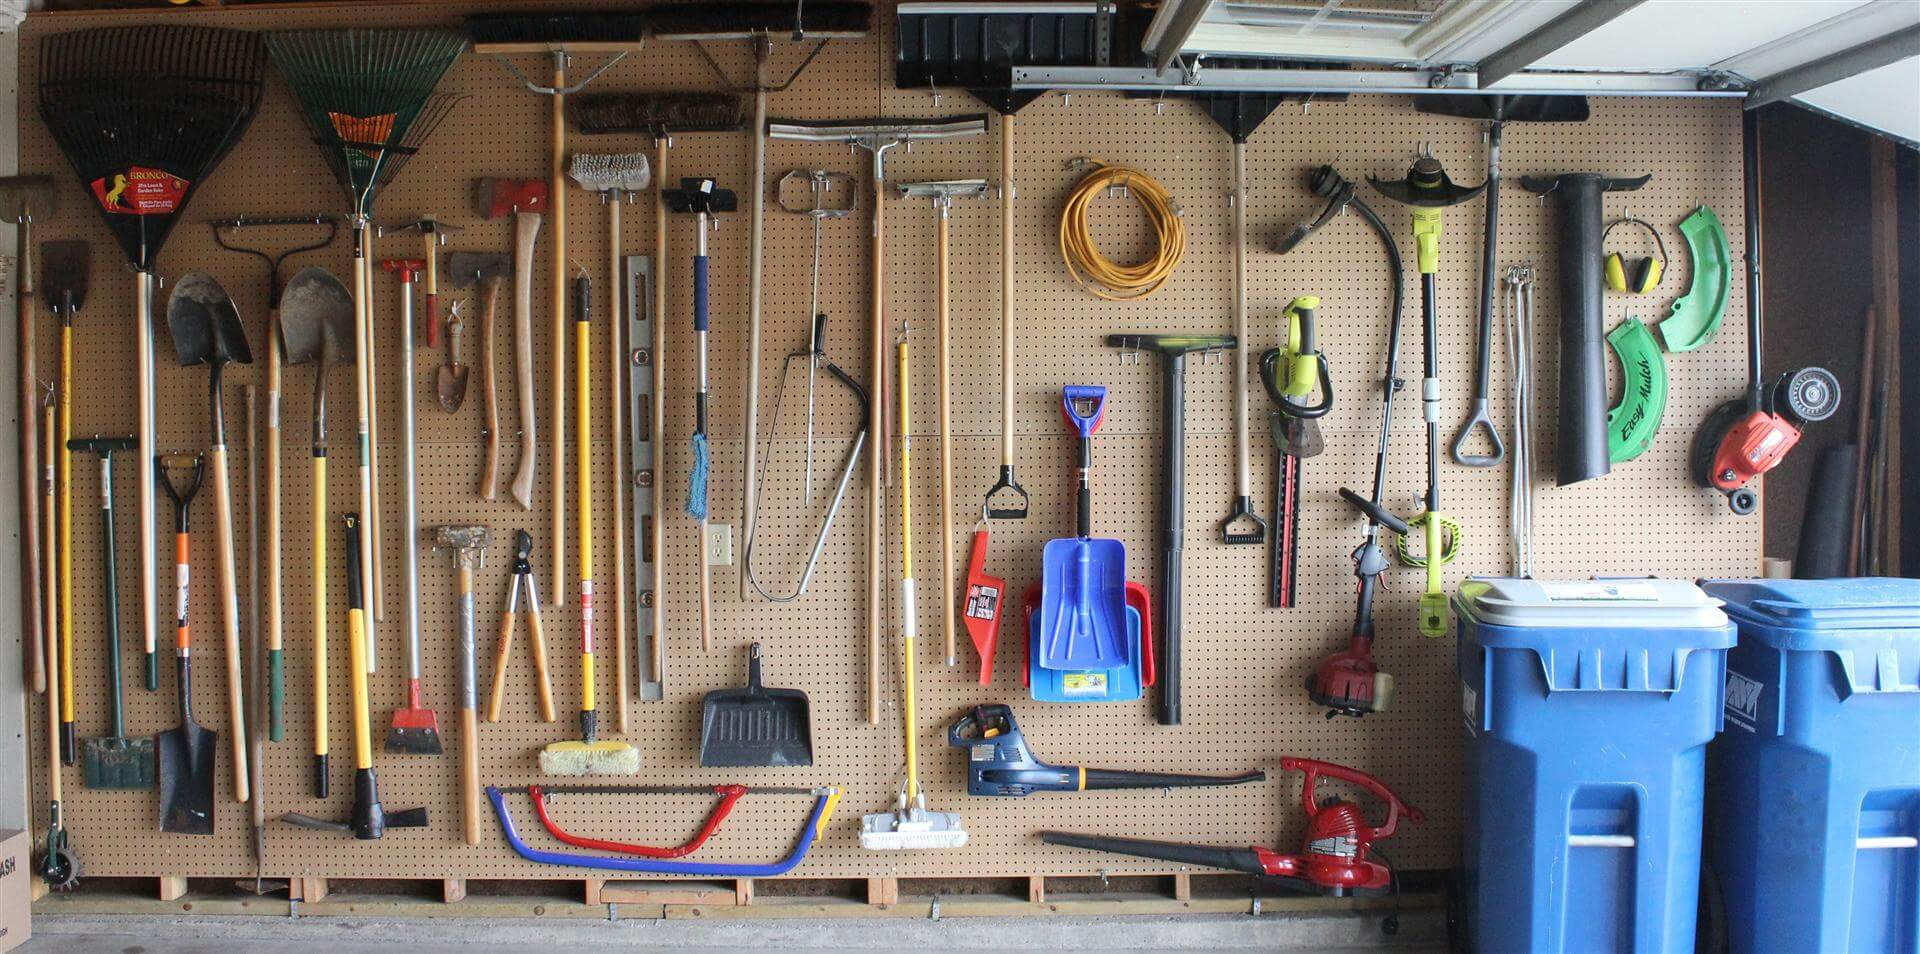 garage organization ideas pegboard - Garage Organization it s tough to beat pegboard